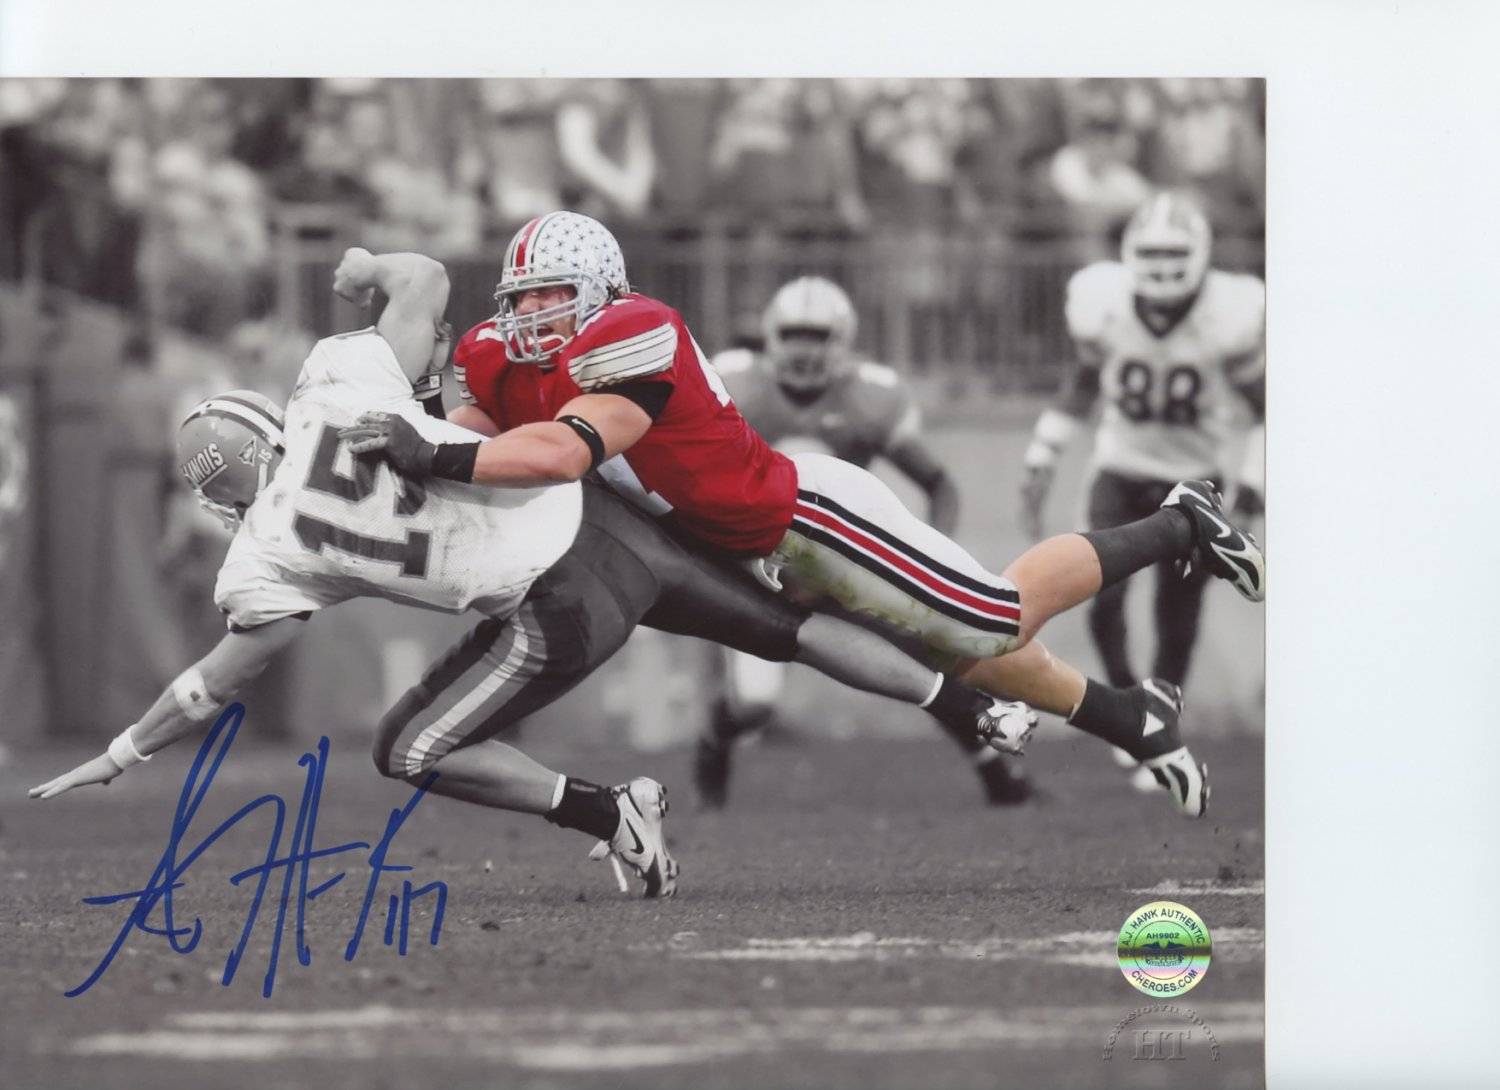 best sneakers 46d5b c8cdc AJ Hawk Ohio State Buckeyes Autographed Signed 8x10 Photo ...